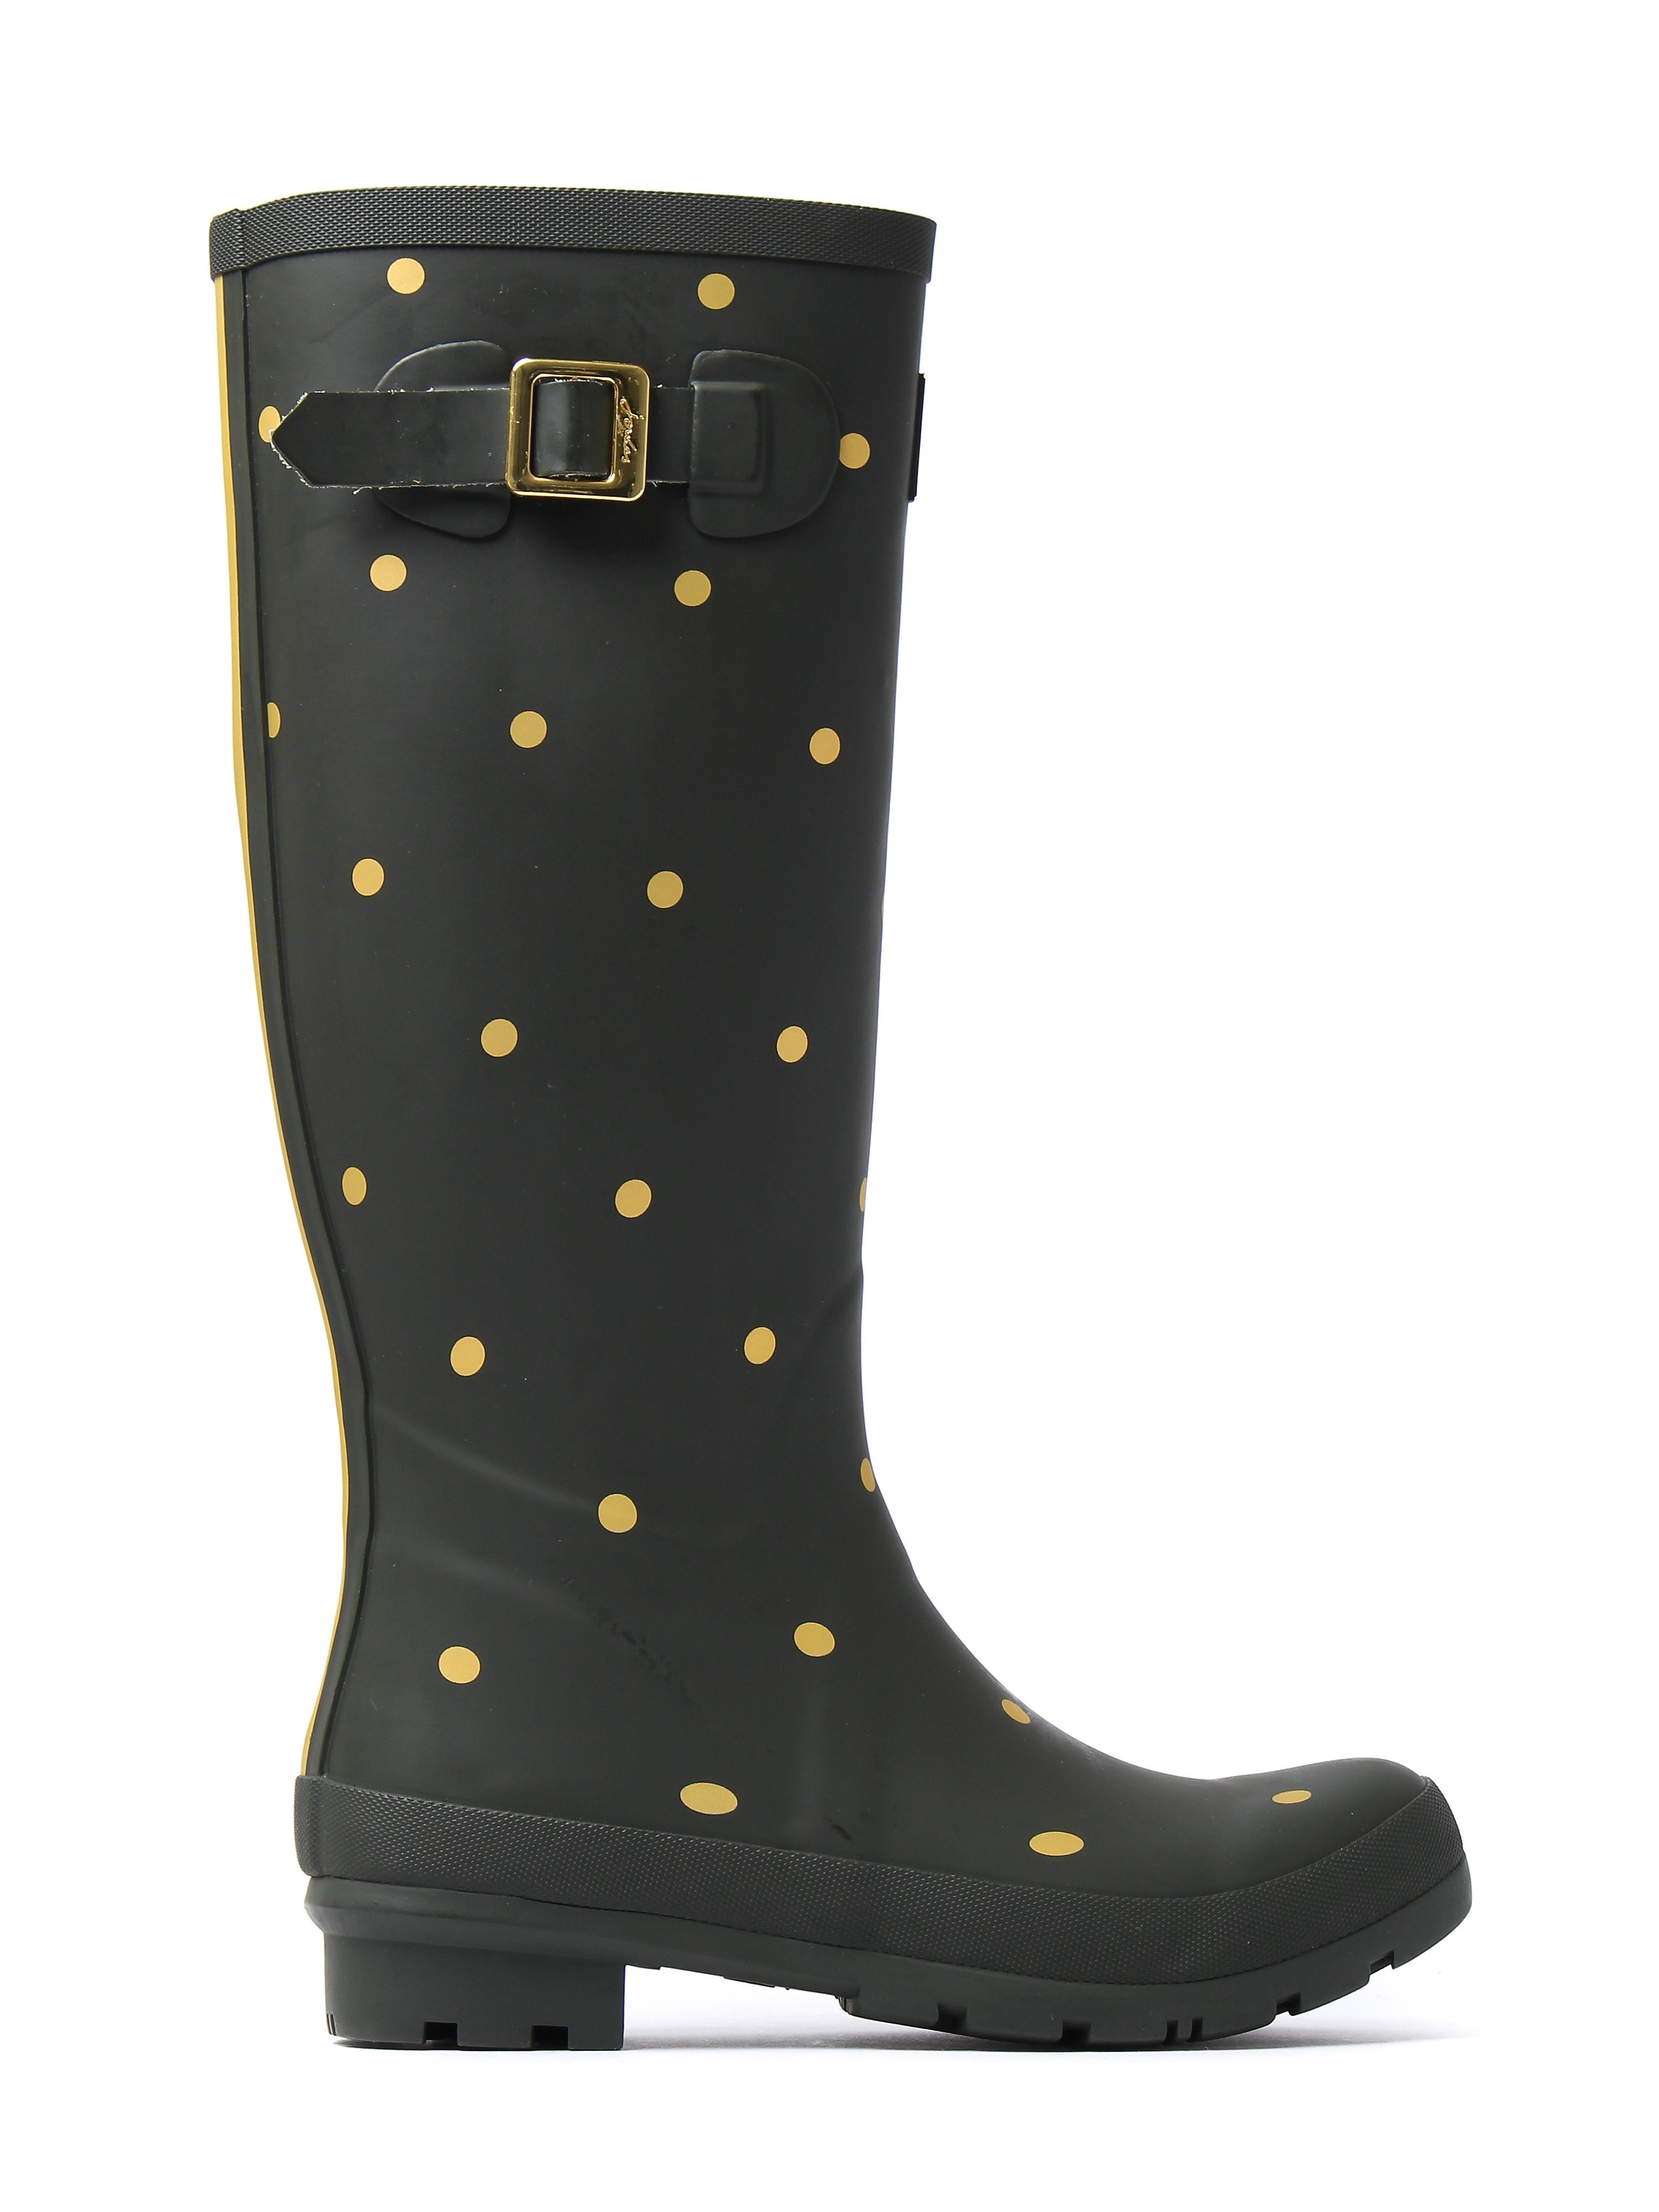 Joules Women's Wellyprint Gold Spot Wellington Boots - Woodland Green